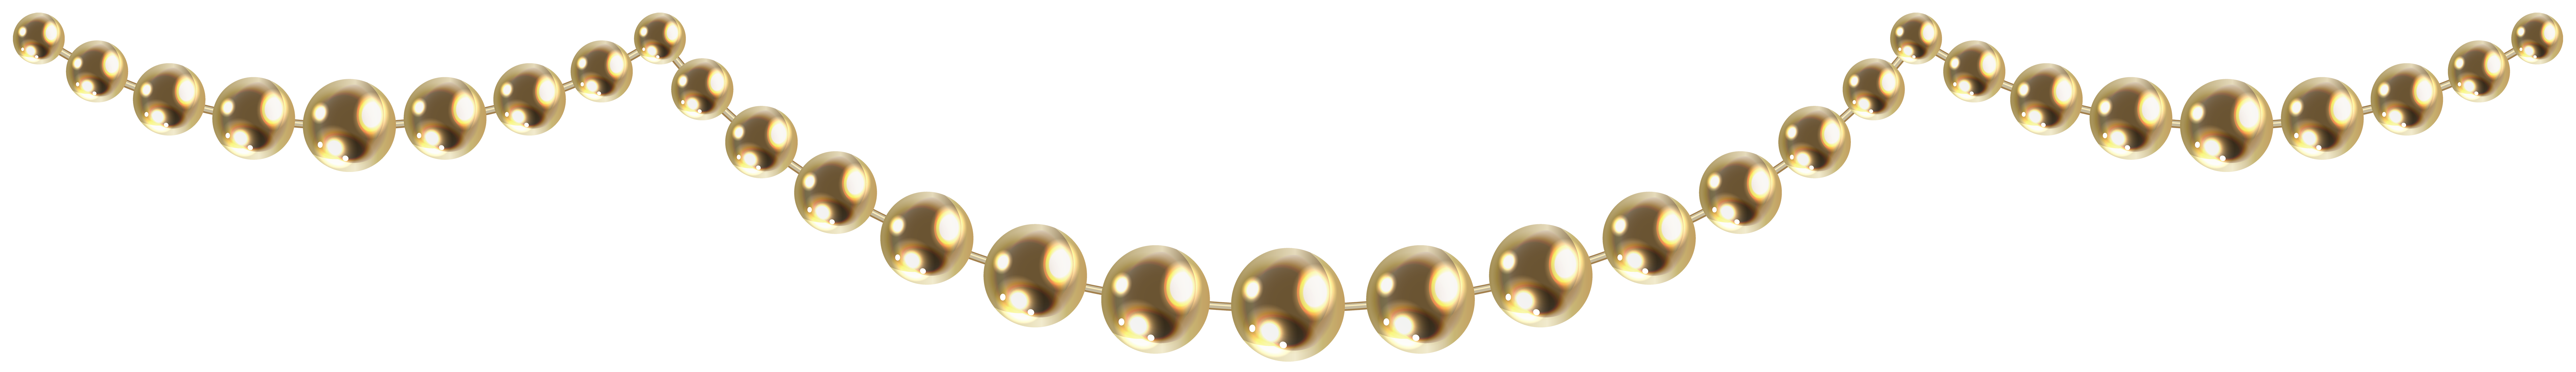 Beads PNG Images Transparent Free Download.